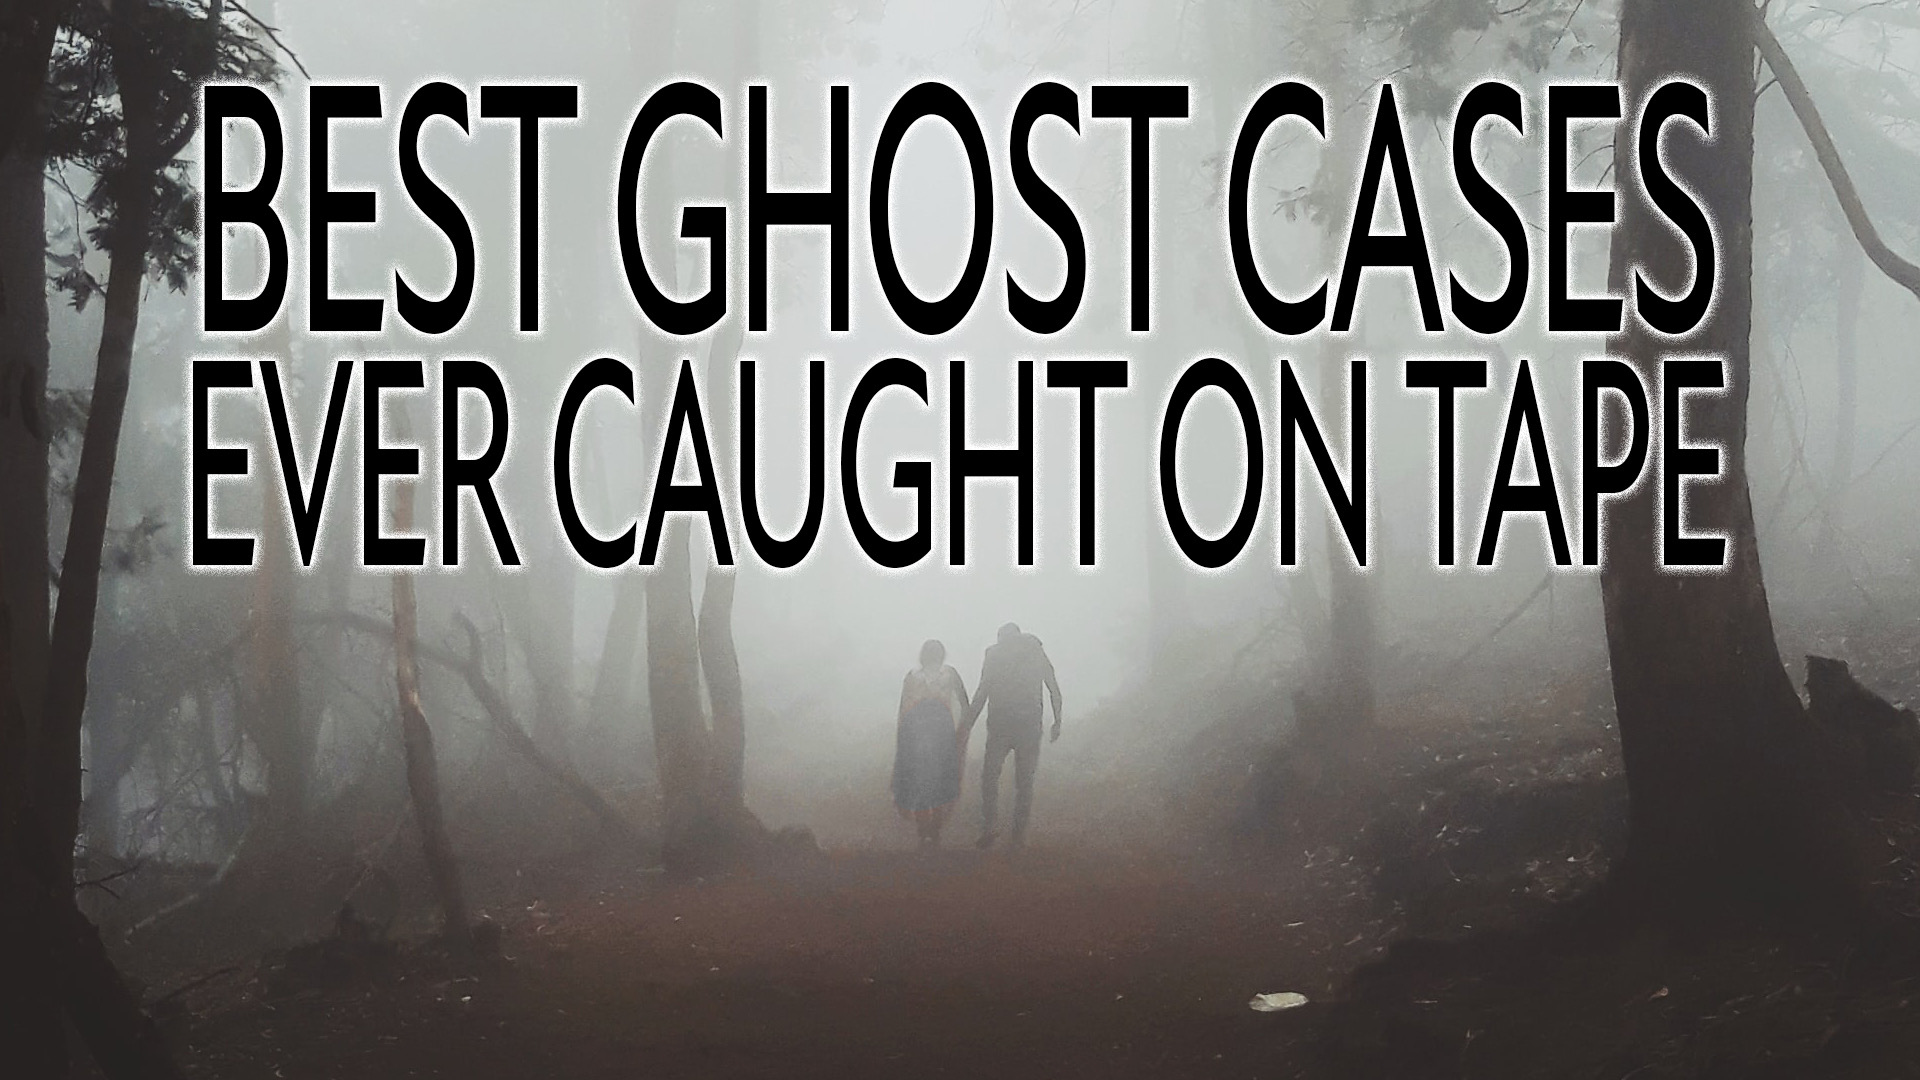 Best Ghost Cases Ever Caught on Tape